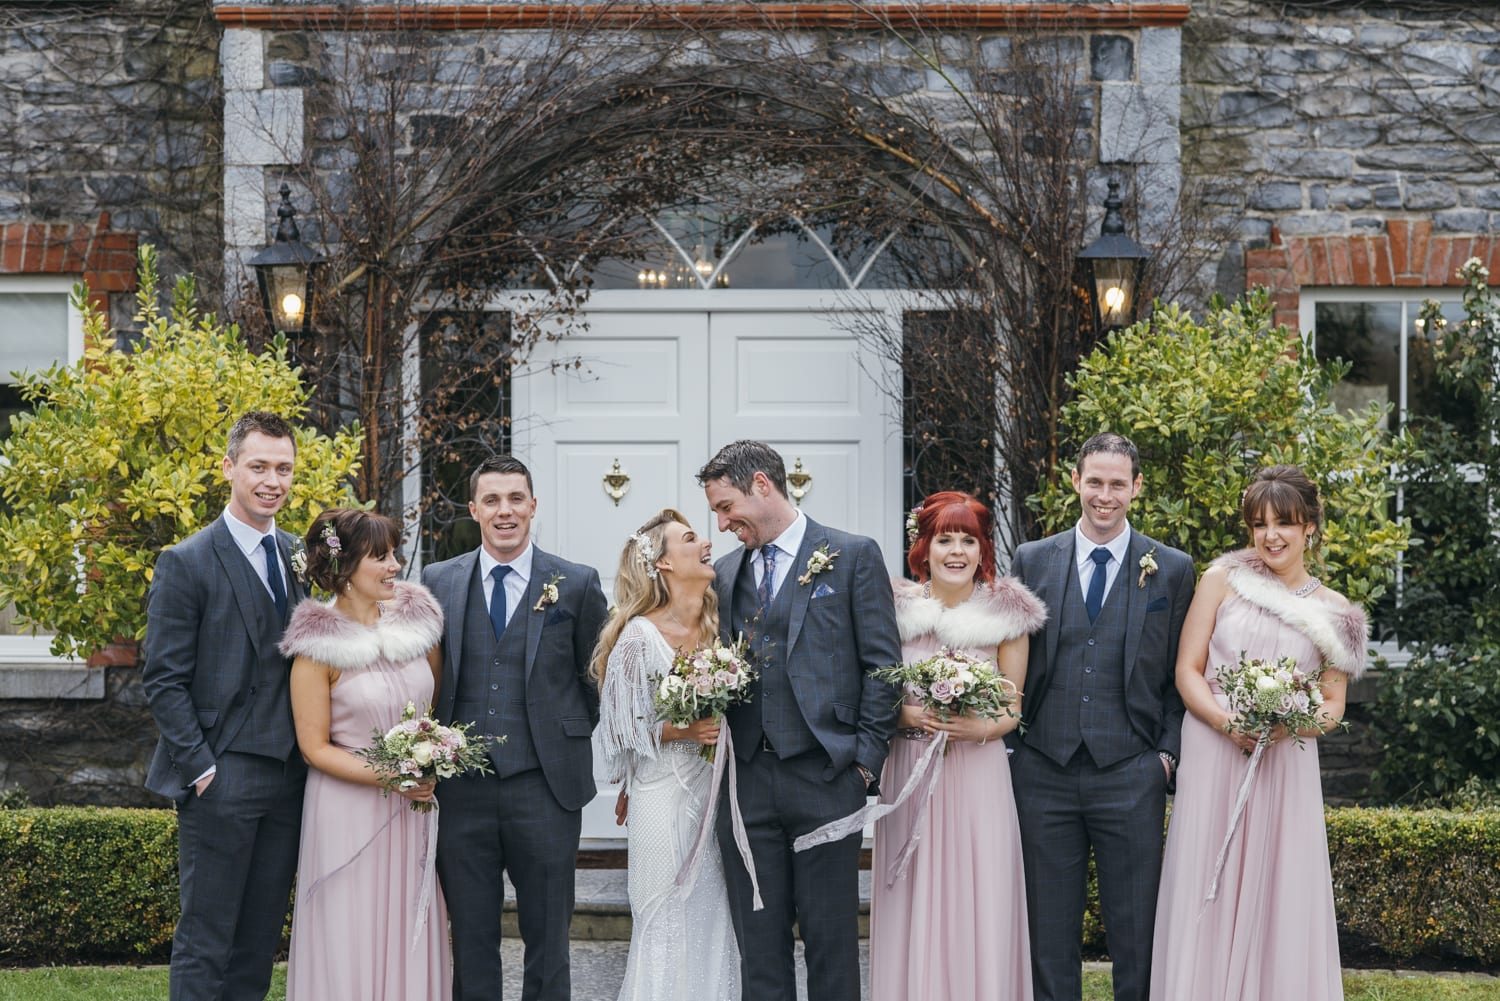 Ballymagarvey Village wedding photography